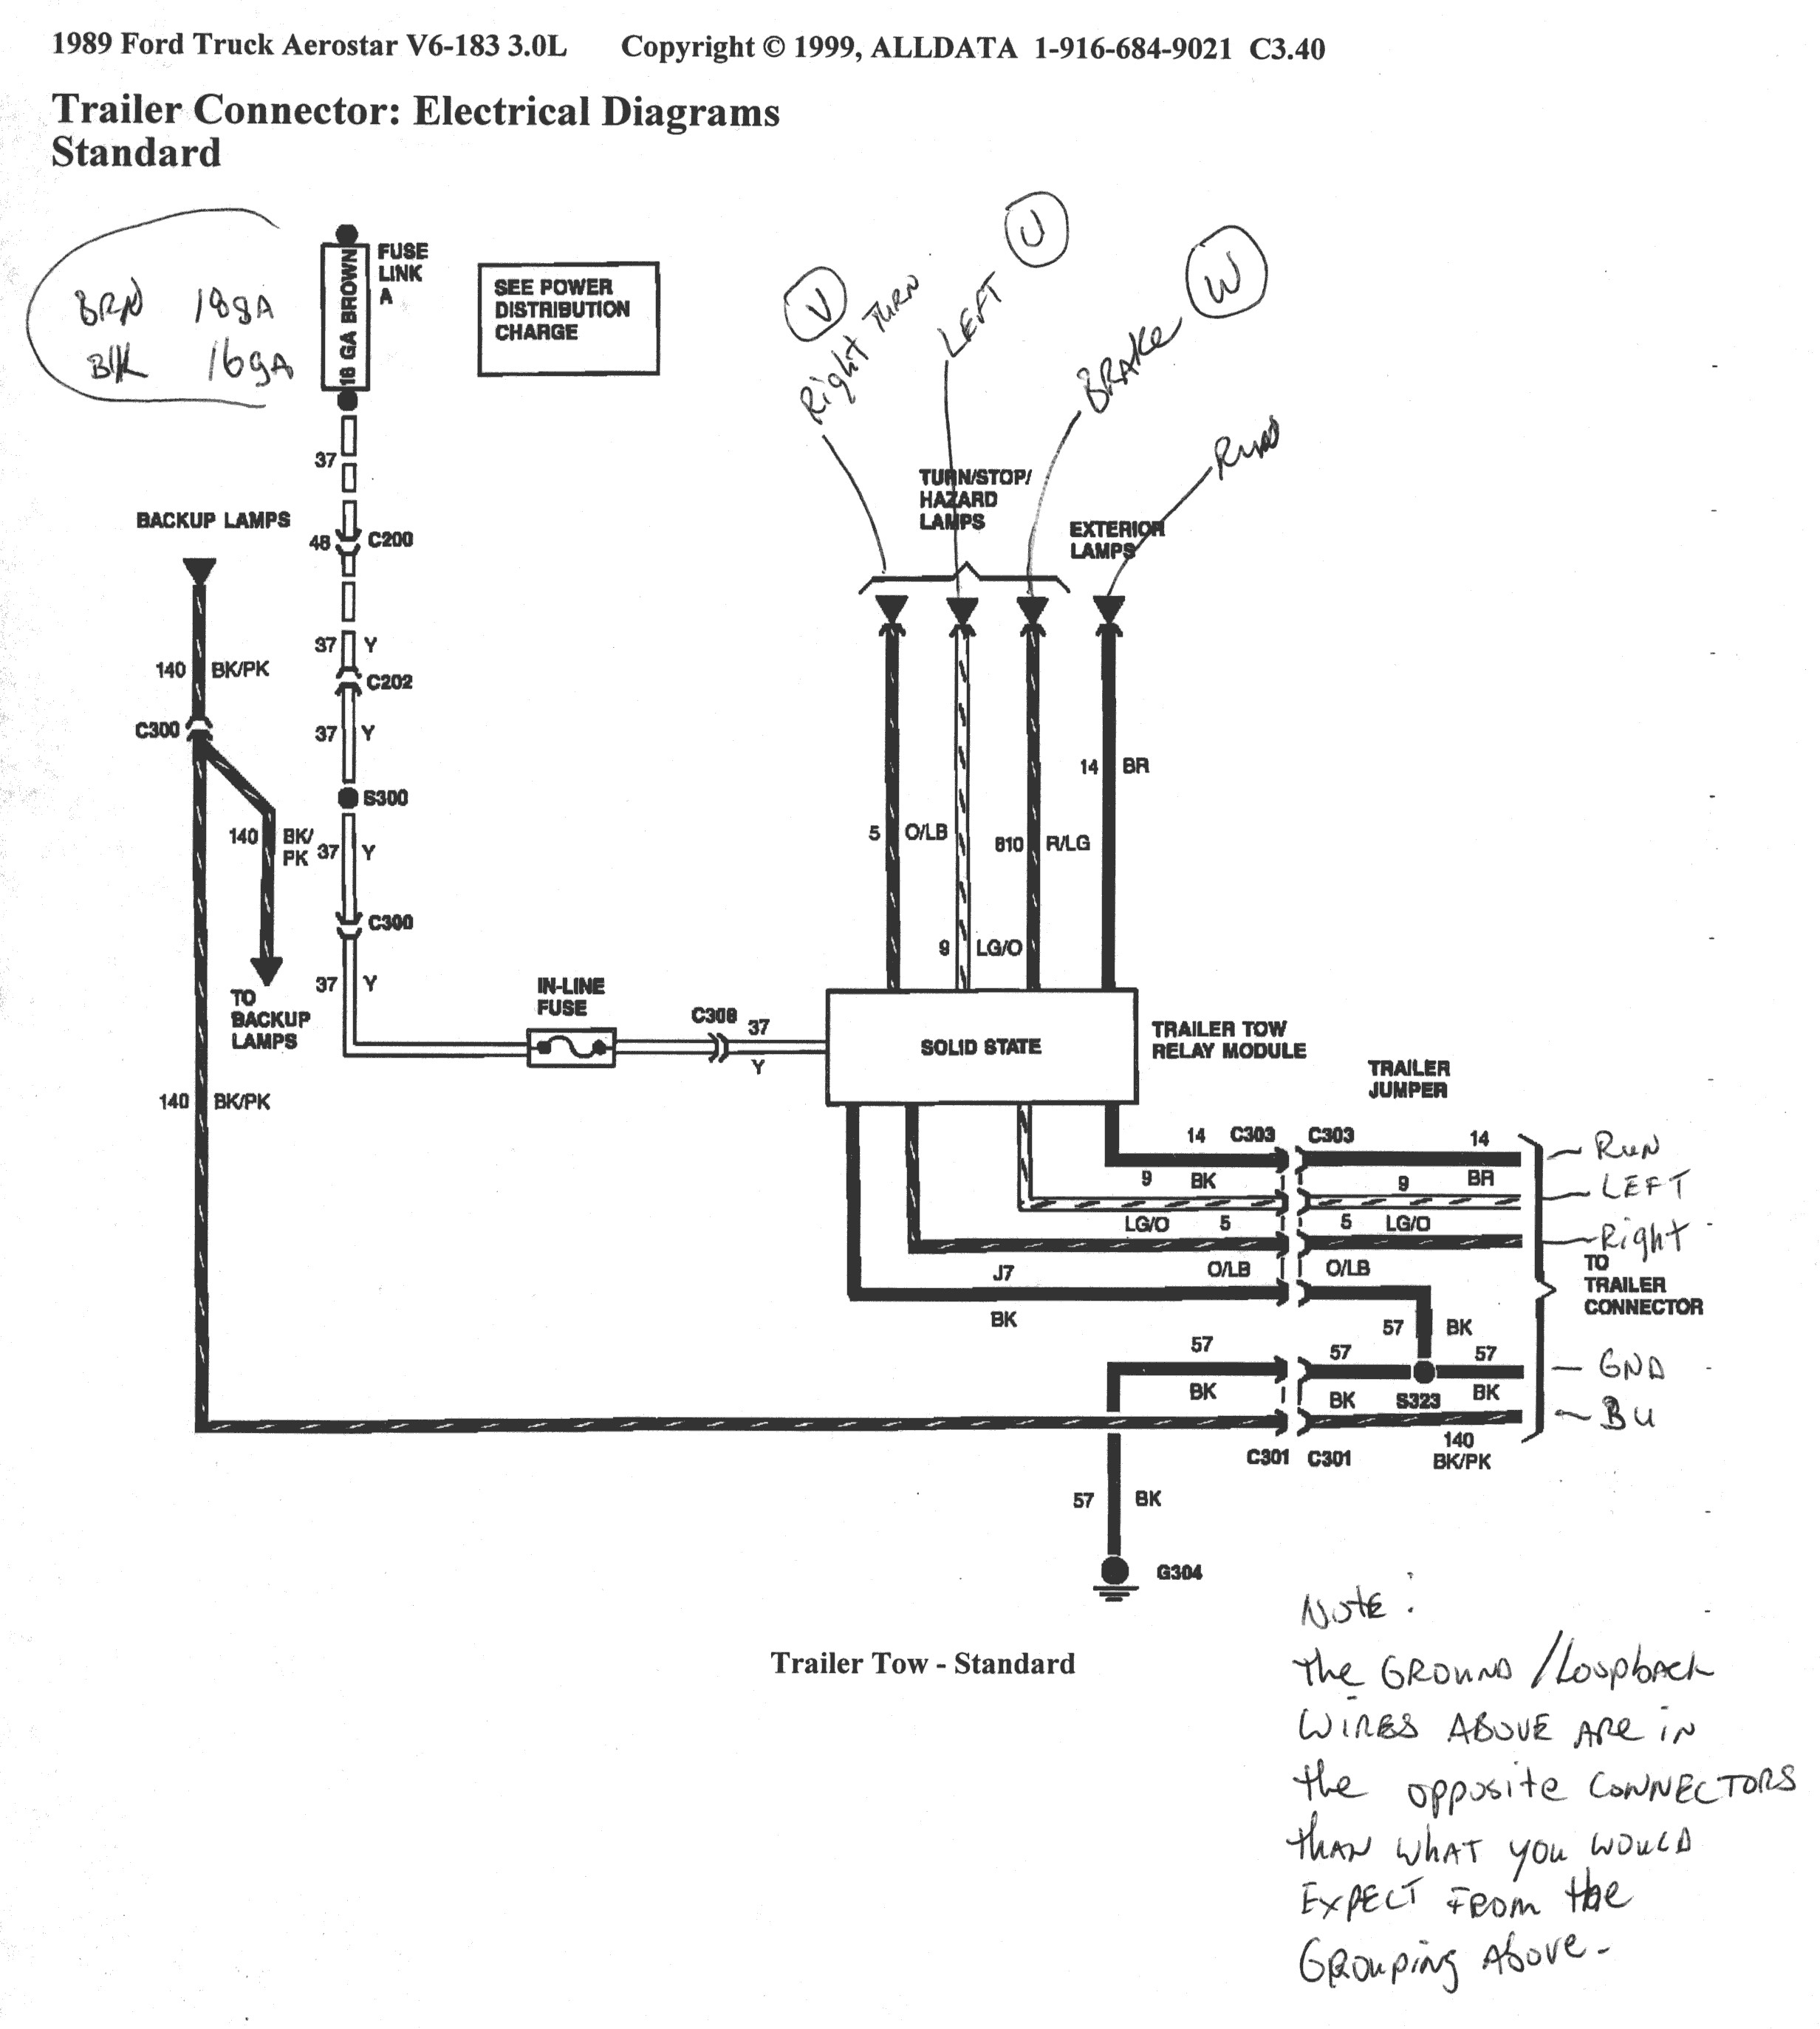 Wiring Diagram for ford F150 Trailer Lights From Truck ford Truck